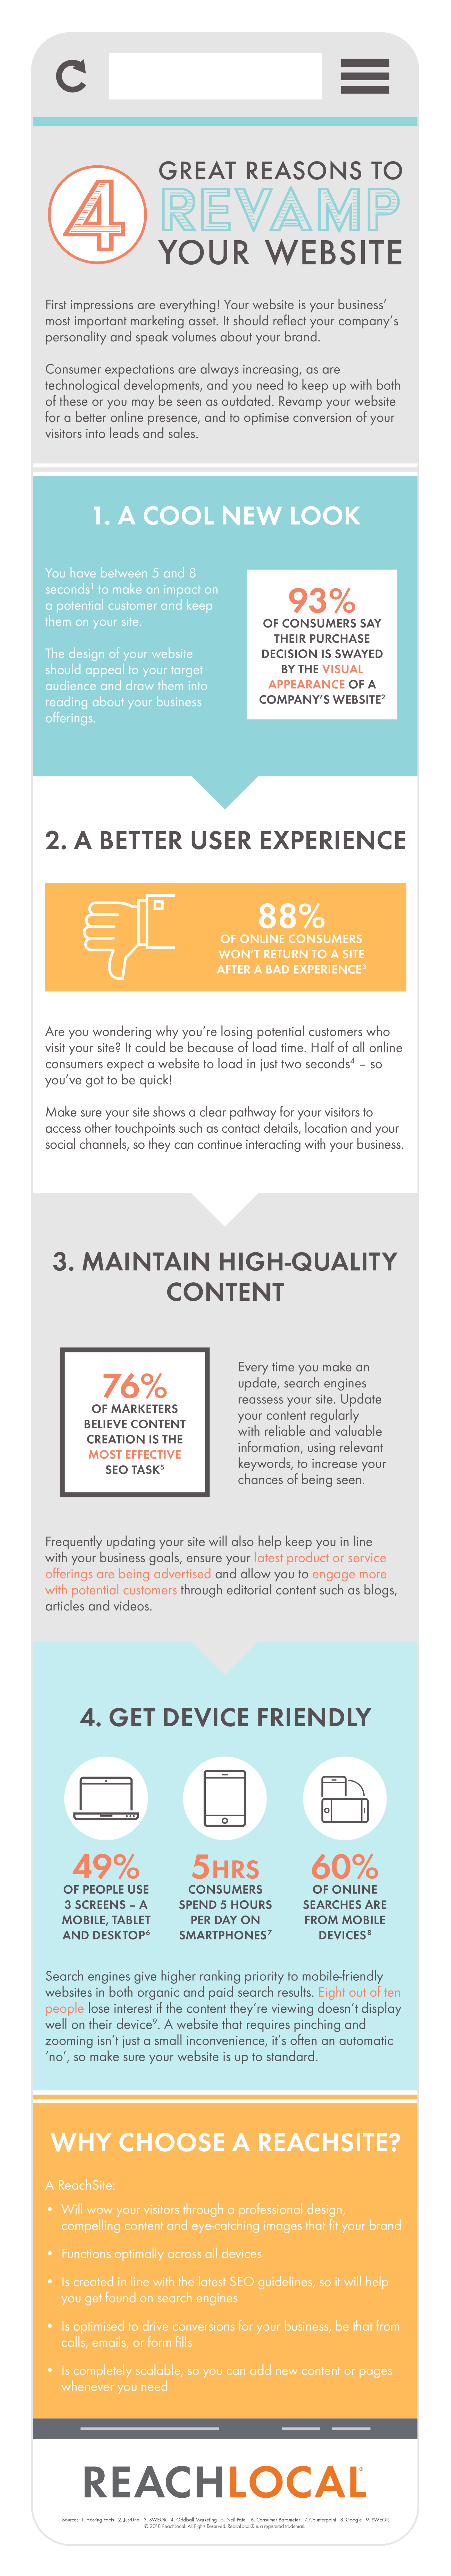 4 Great Reasons to Revamp Your Website